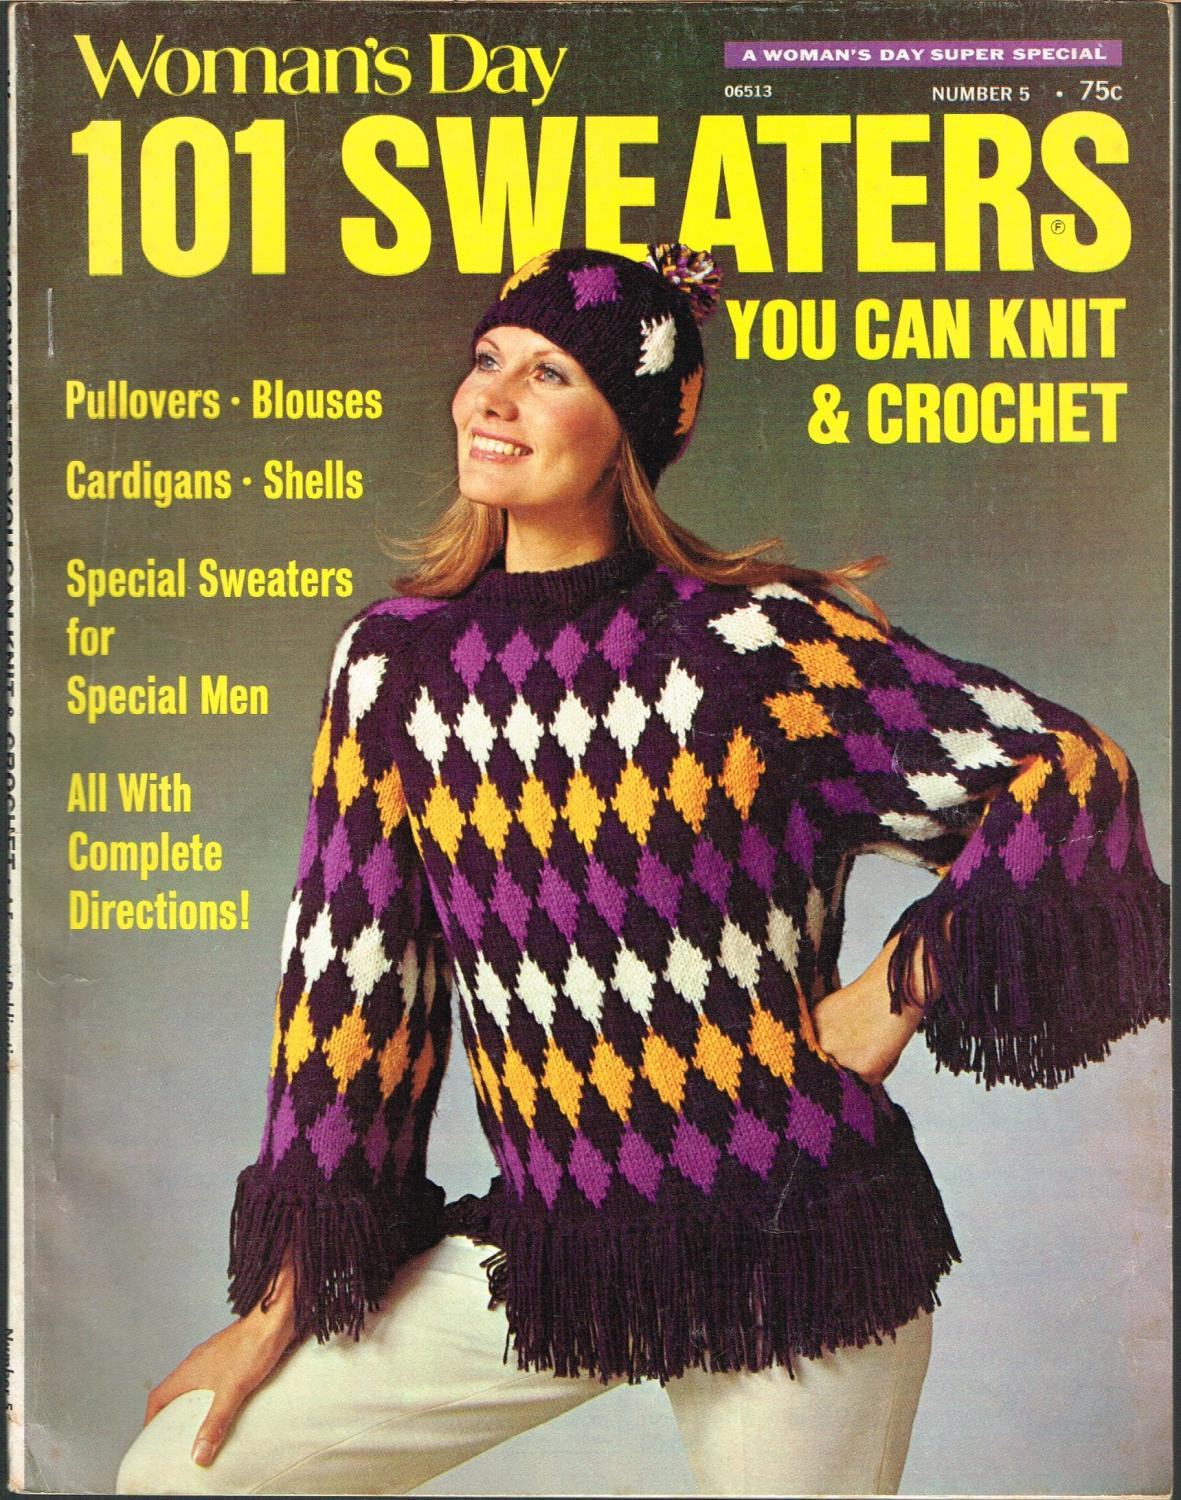 Woman's Day 101 Sweaters You Can Knit and Crochet, Number 5: Saunders, Ellene, Editor.